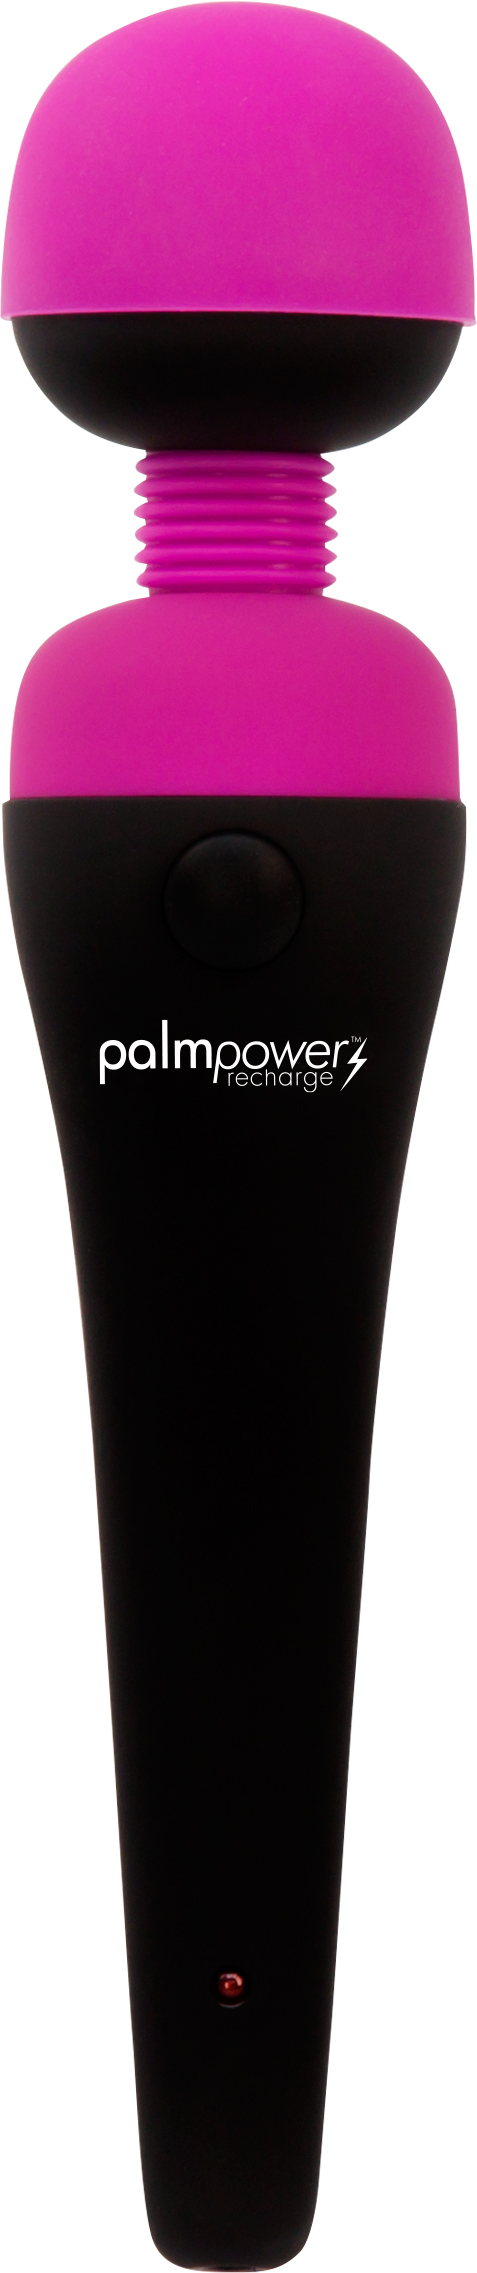 PalmPower Recharge Massage Wand